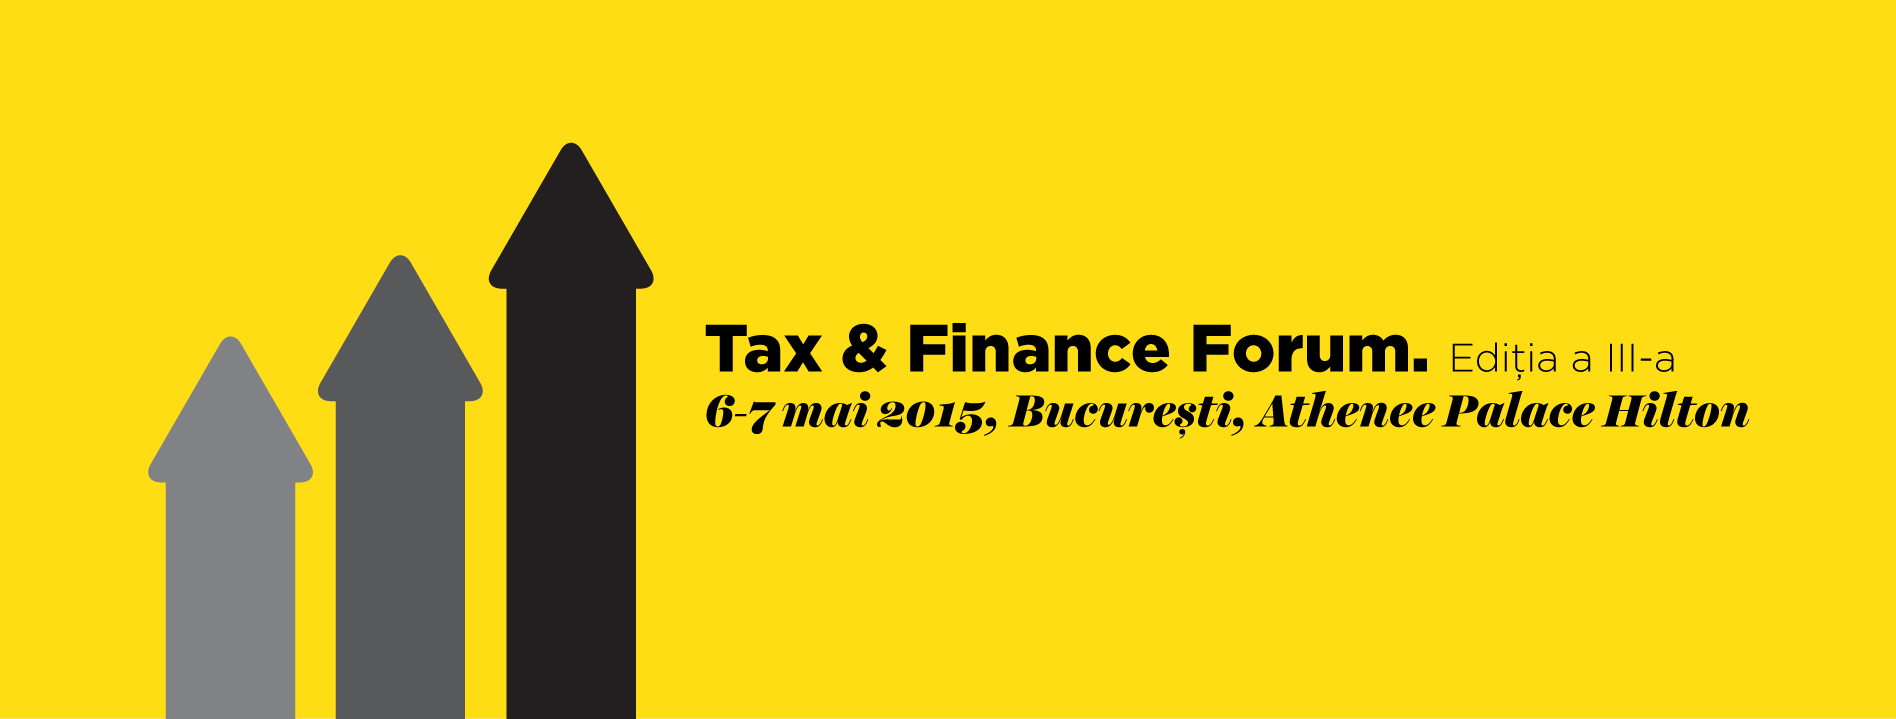 Tax & Finance Forum. Editia a III-a